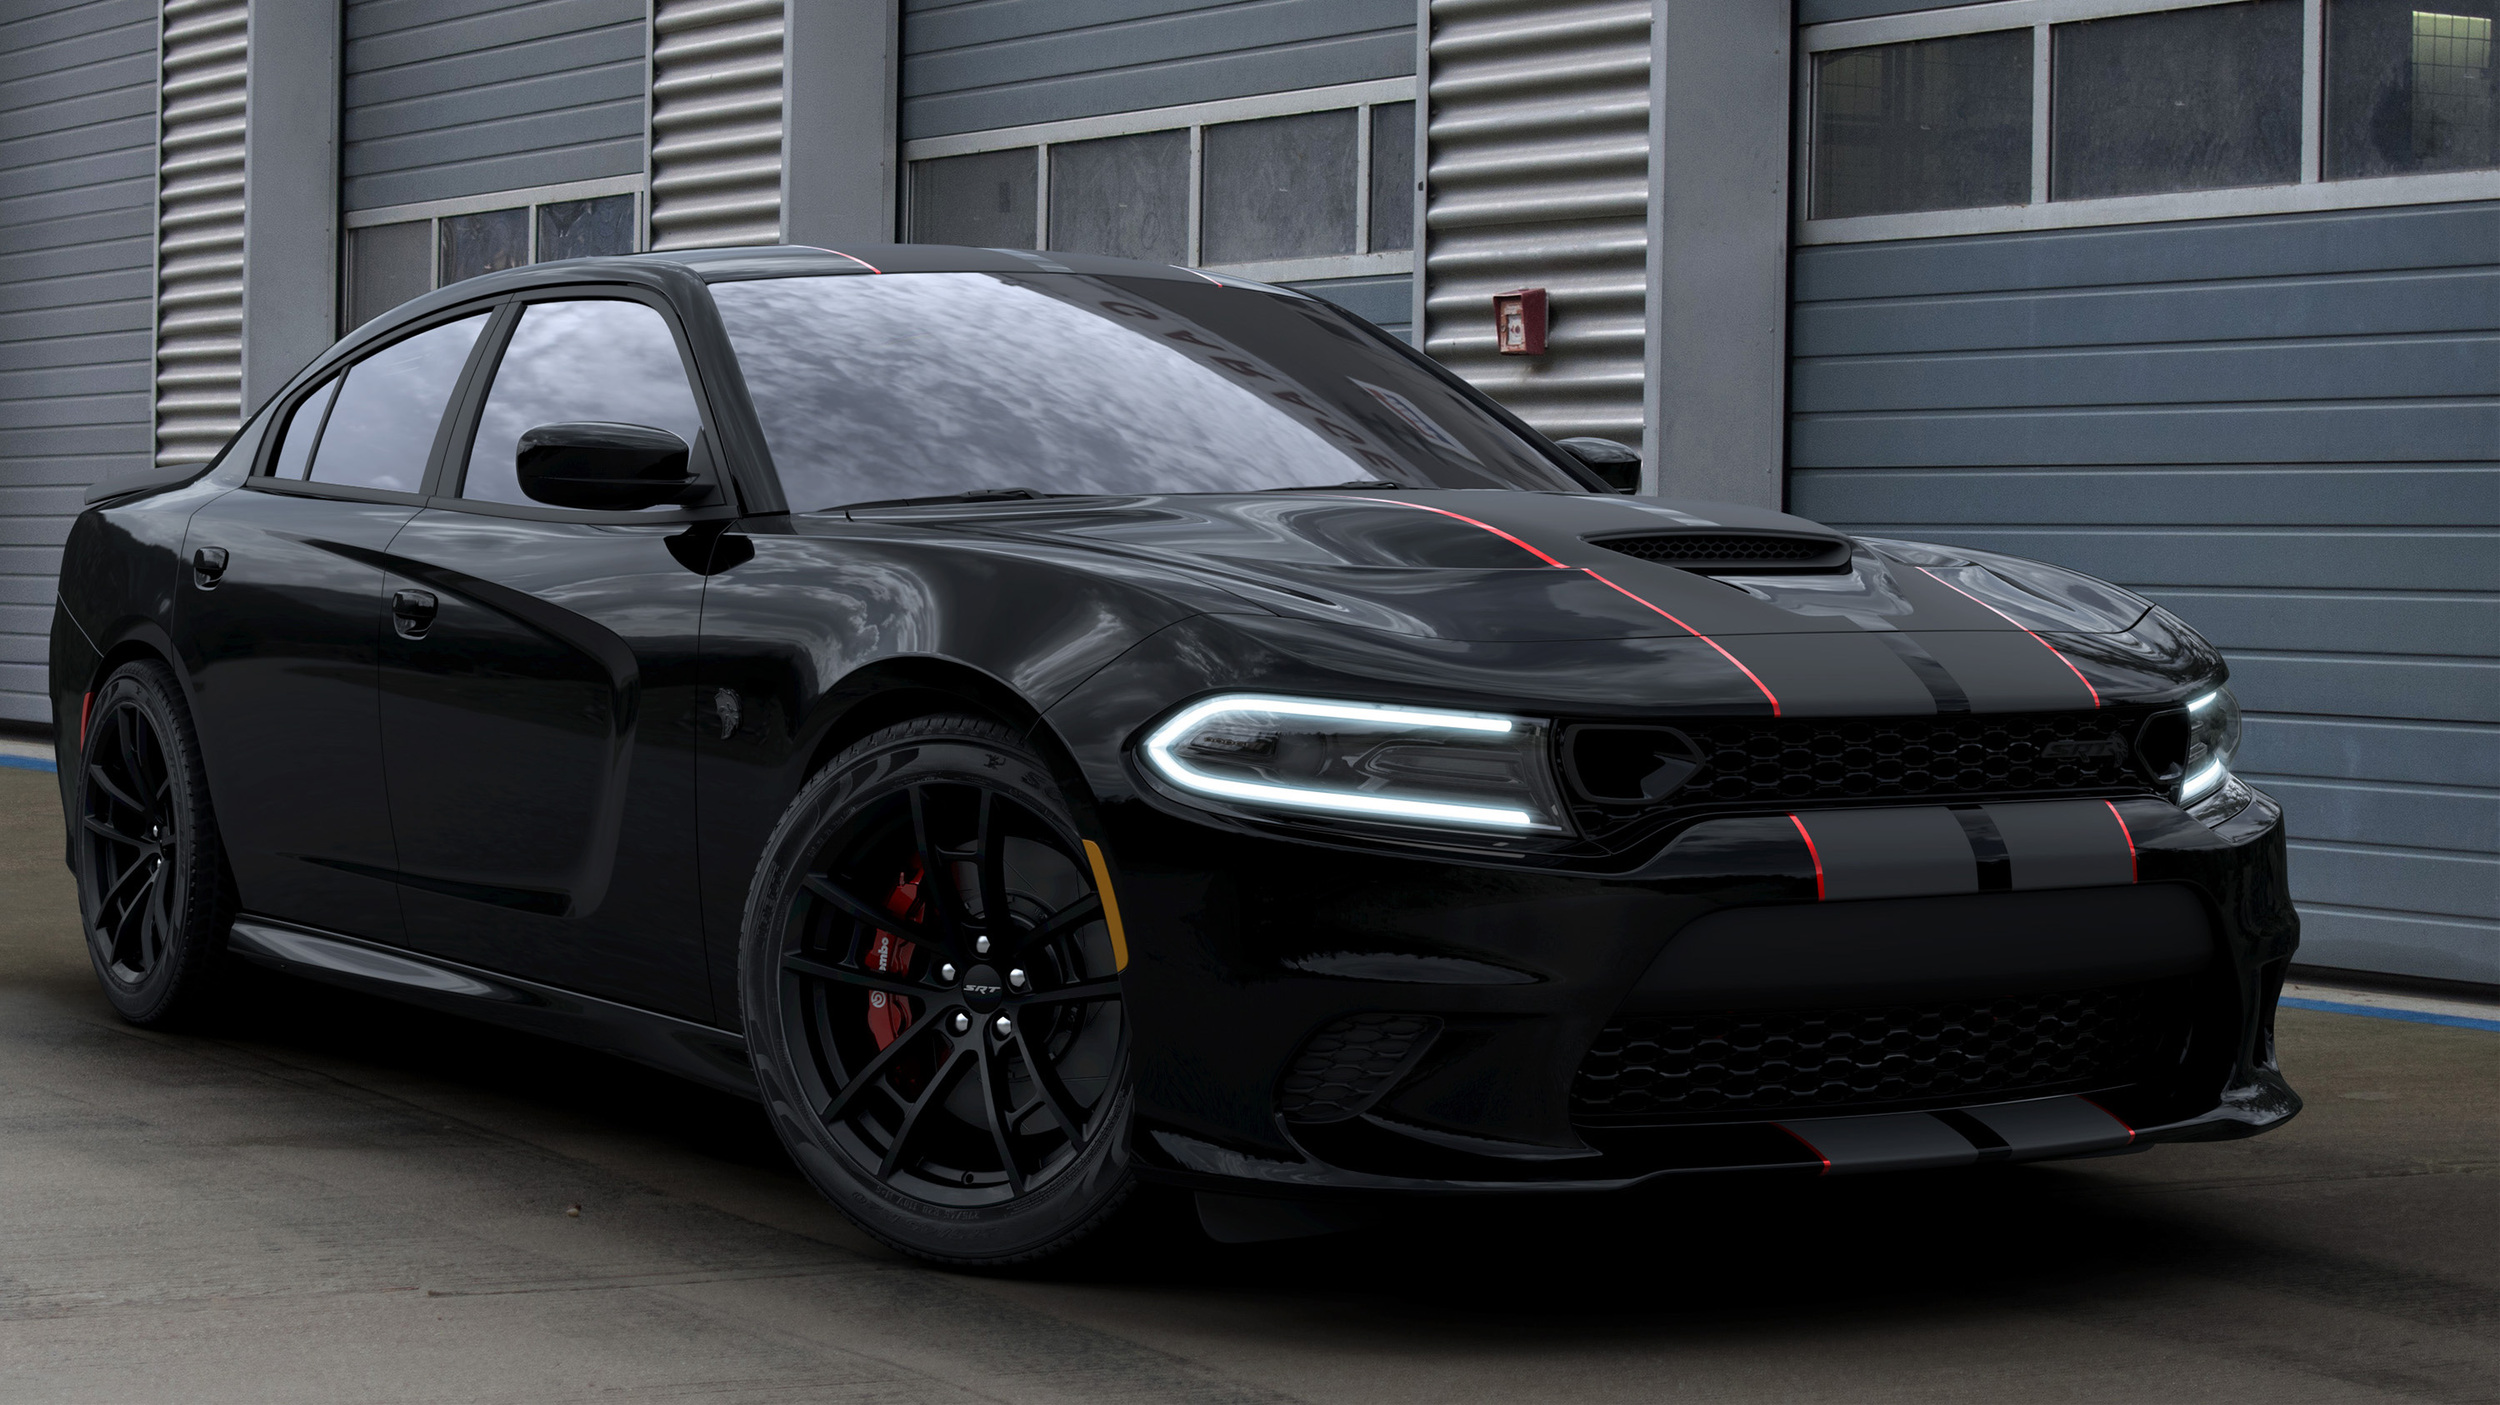 Dodge Charger Srt Hellcat >> 2019 Dodge Charger Hellcat Octane Edition is a limited ...